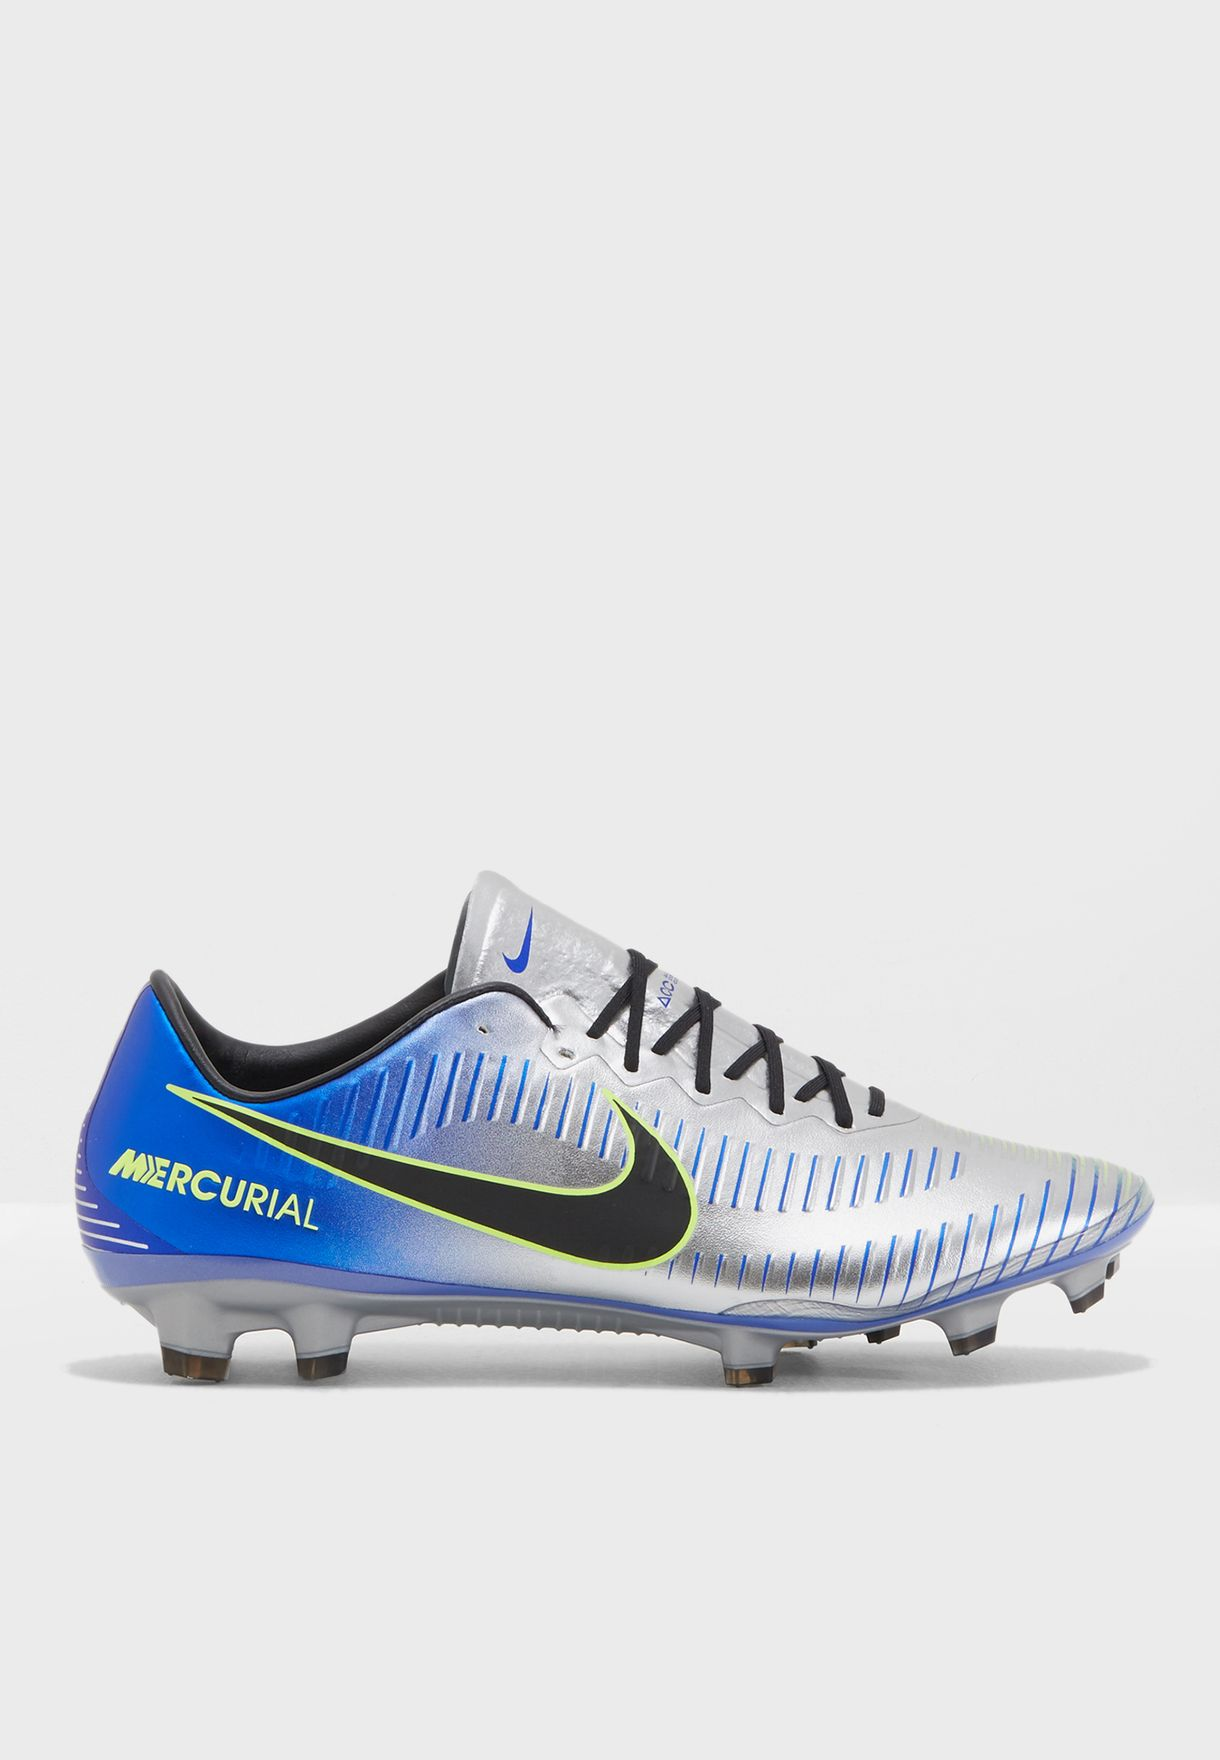 c2b3e0e5b Shop Nike multicolor Mercurial Vapor XI NJR FG 921547-407 for Men in ...